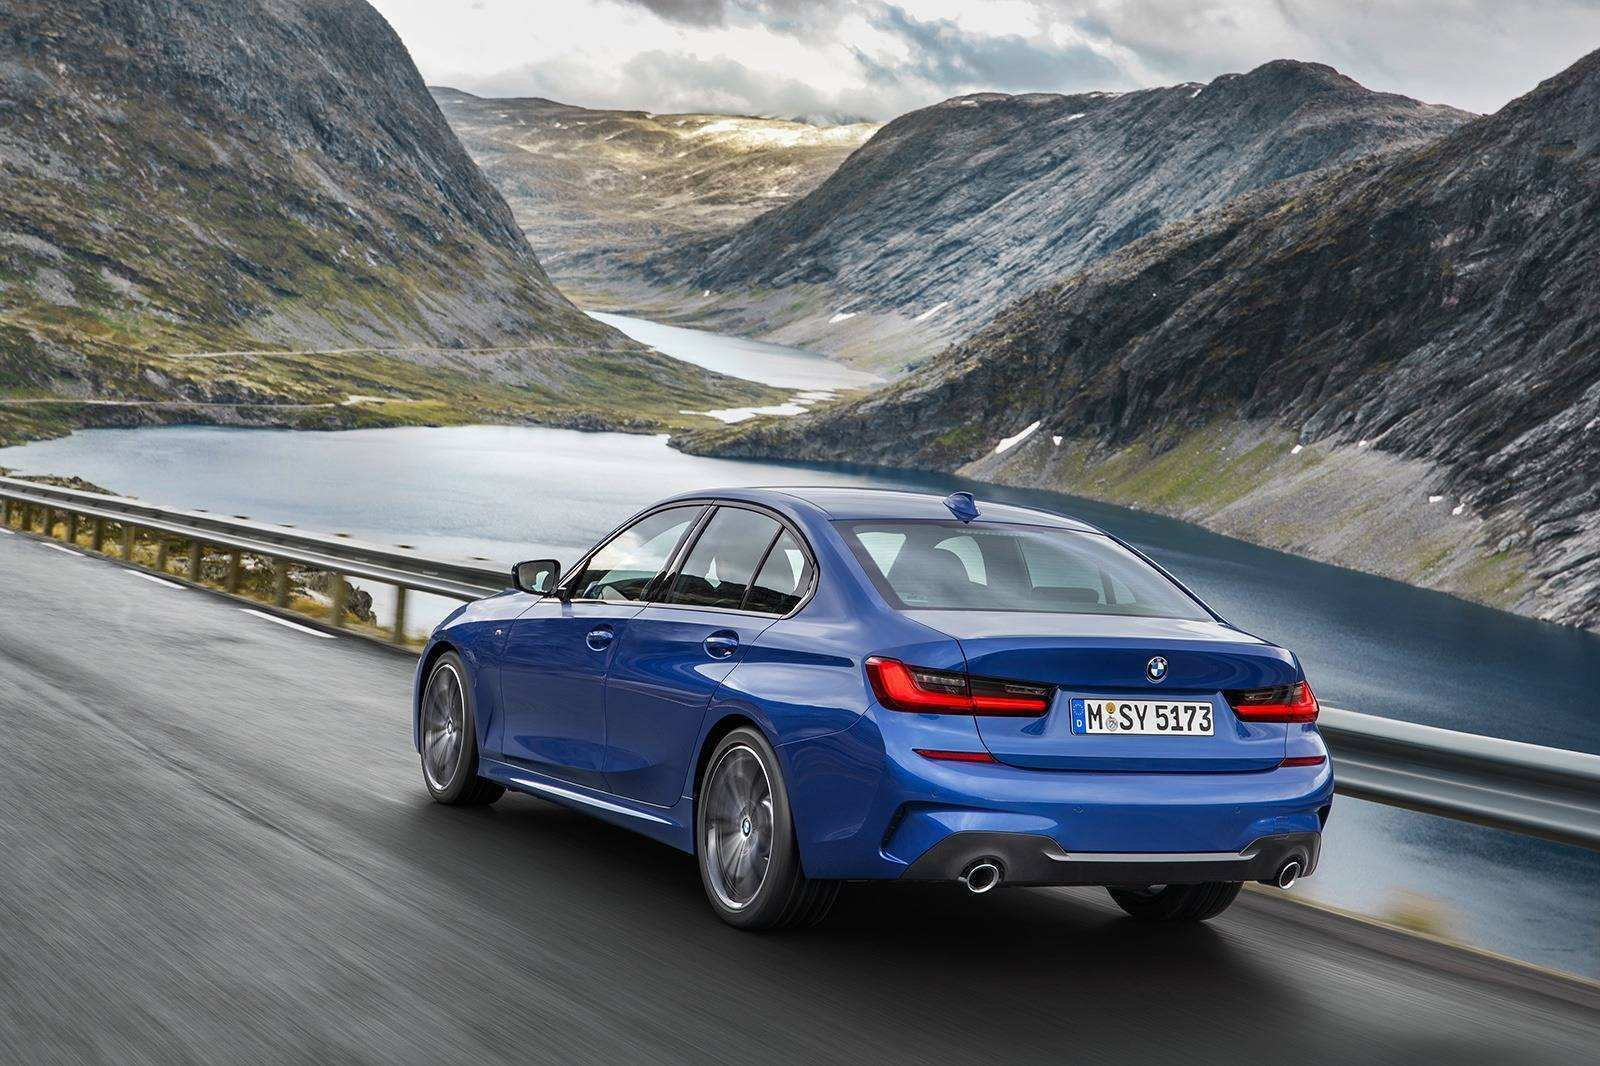 15 All New 2019 Bmw 3 Series Release Date Release with 2019 Bmw 3 Series Release Date